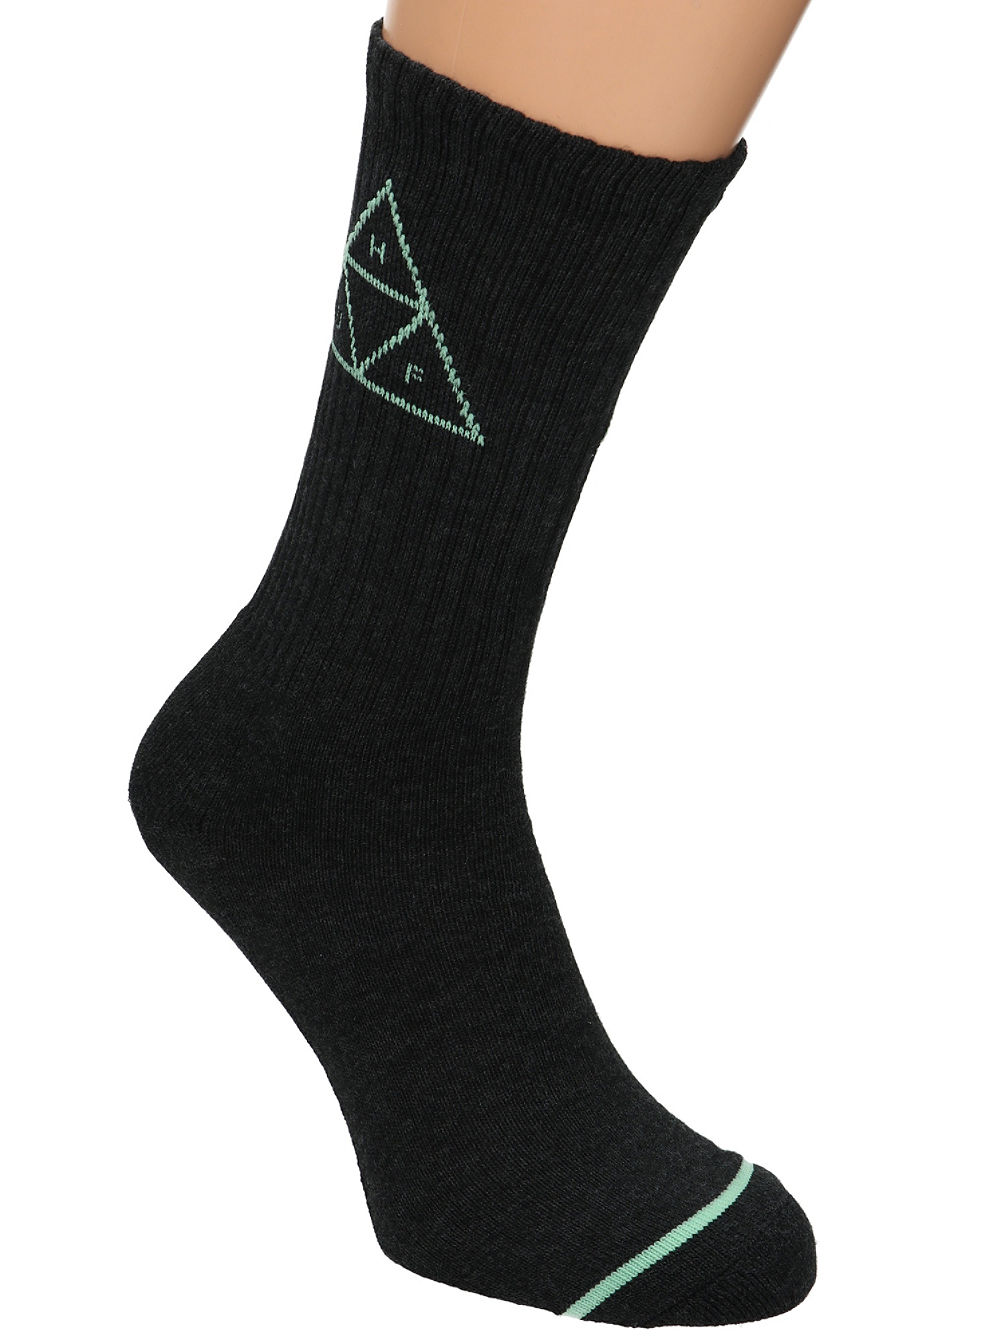 Triple Triangle Crew Socks